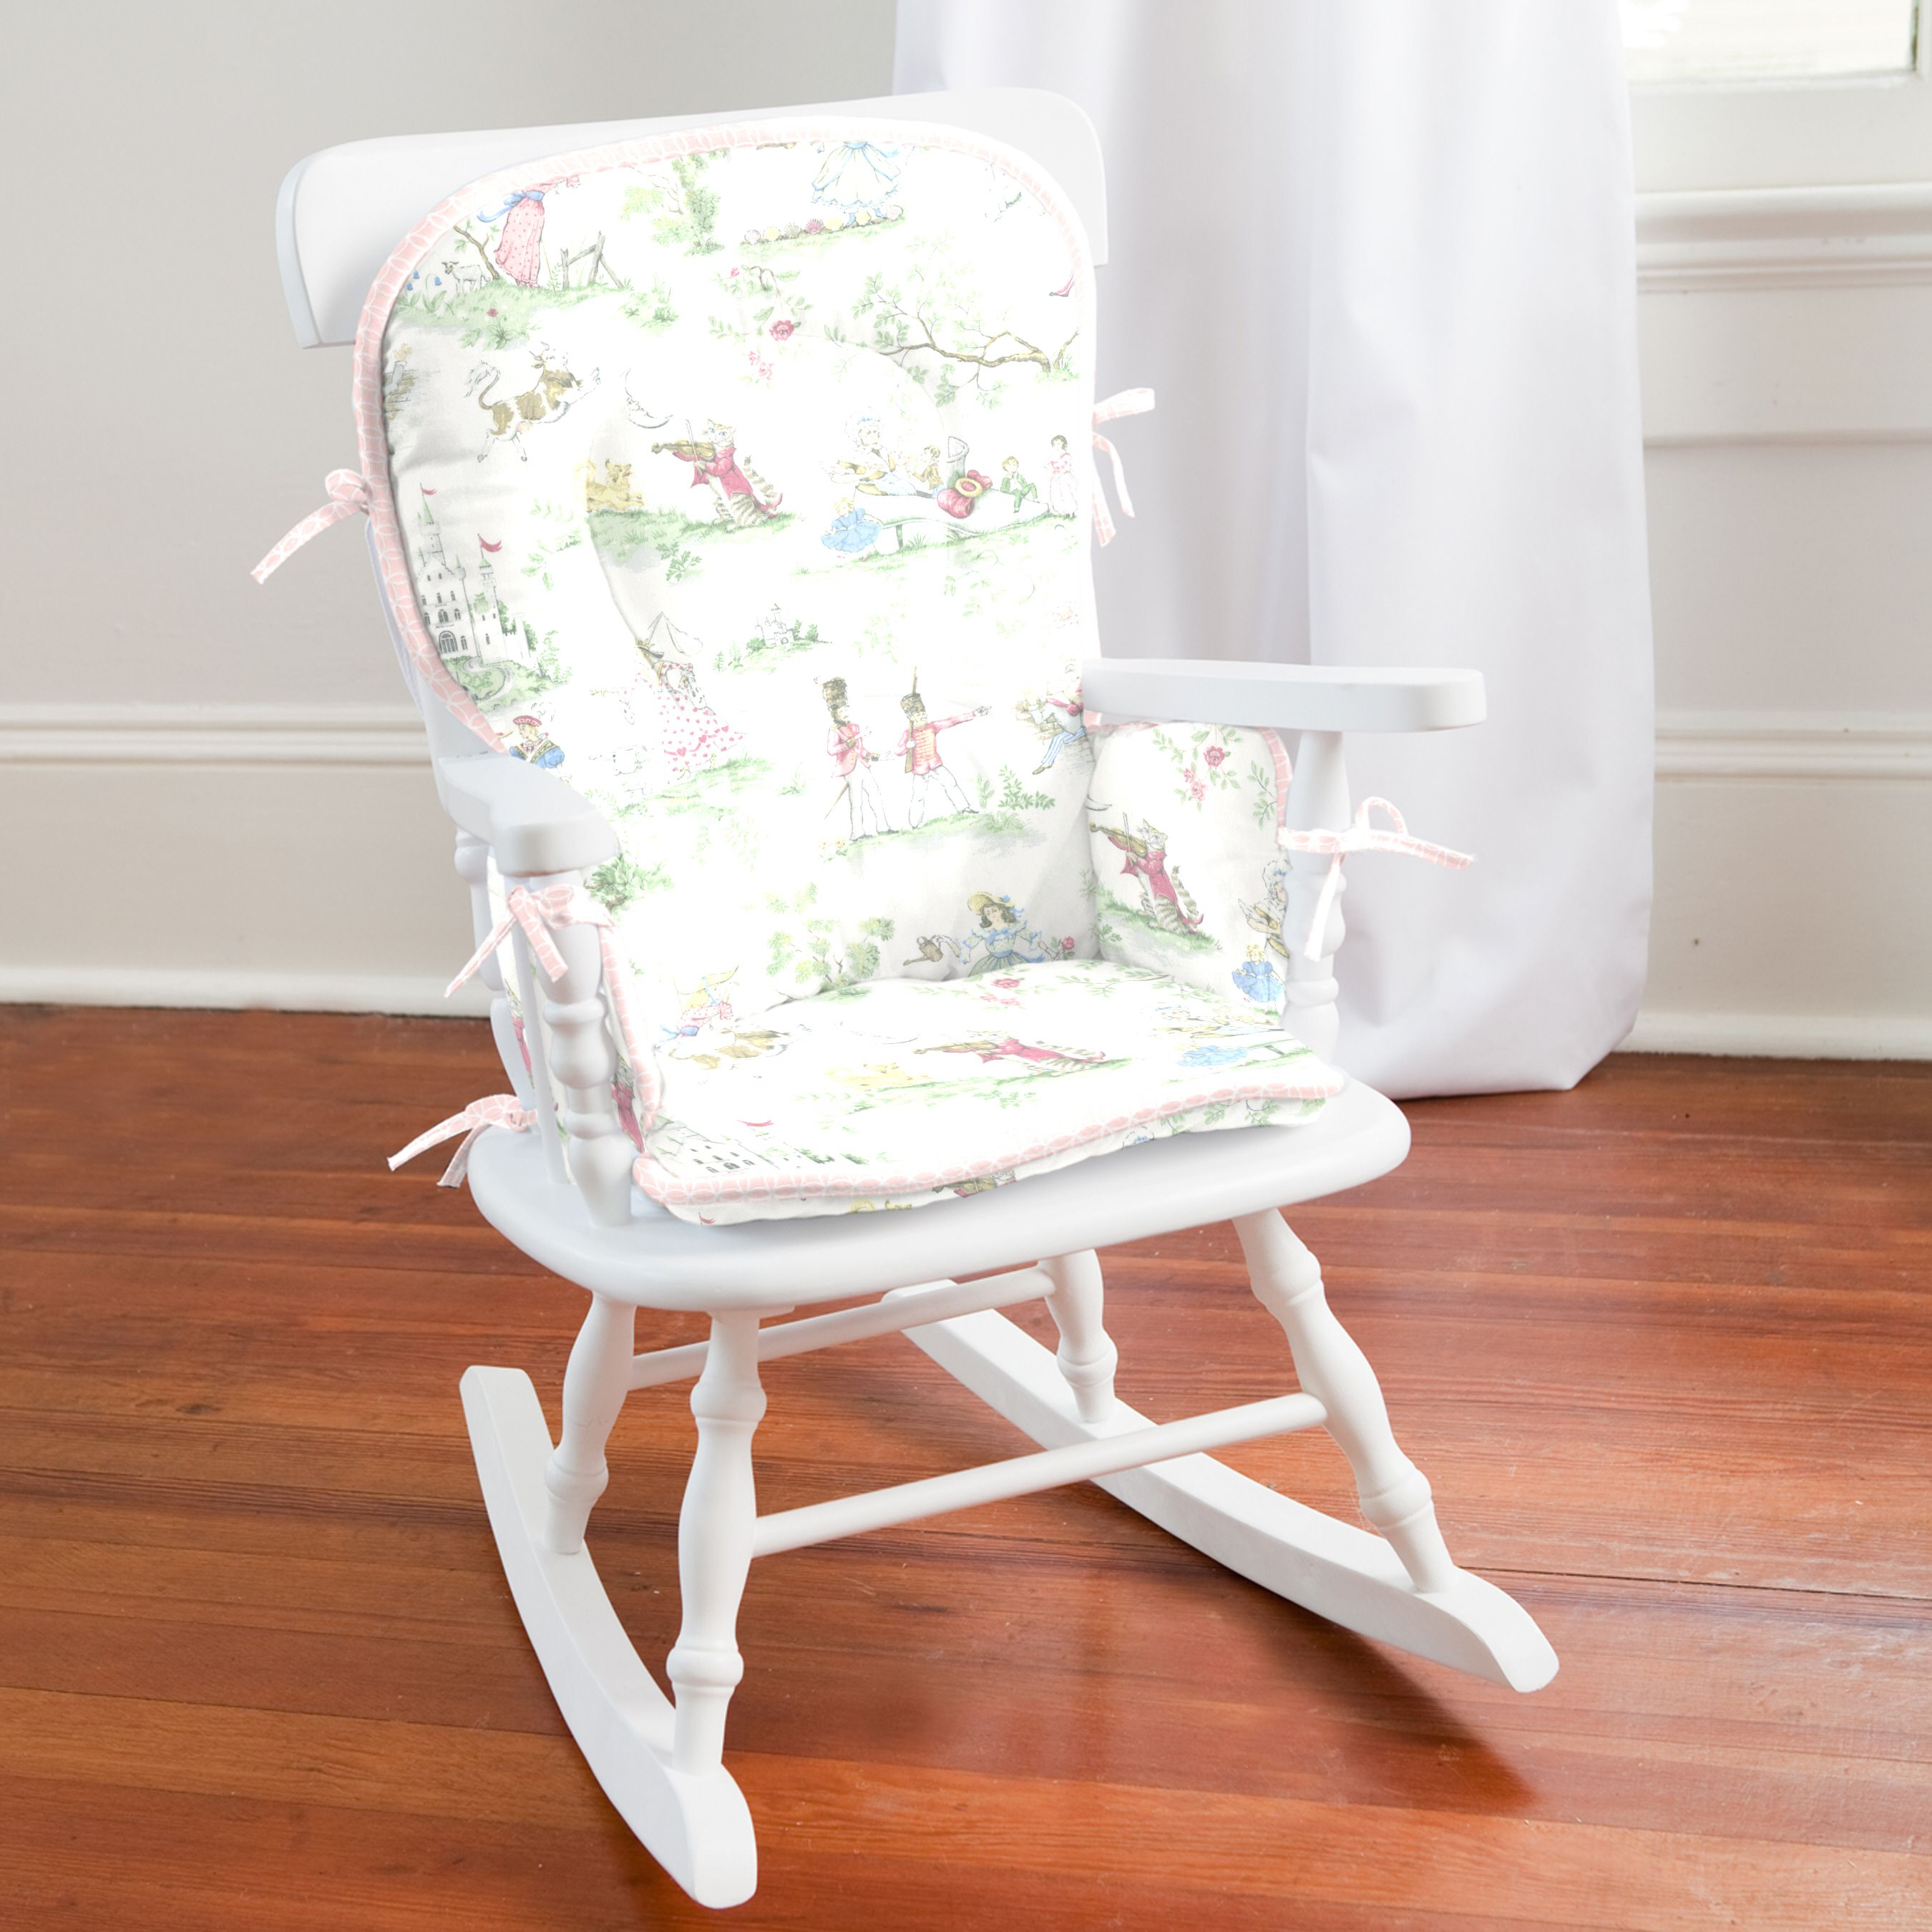 Terrific Pink Over The Moon Toile High Chair Pad Violet Rocking Uwap Interior Chair Design Uwaporg